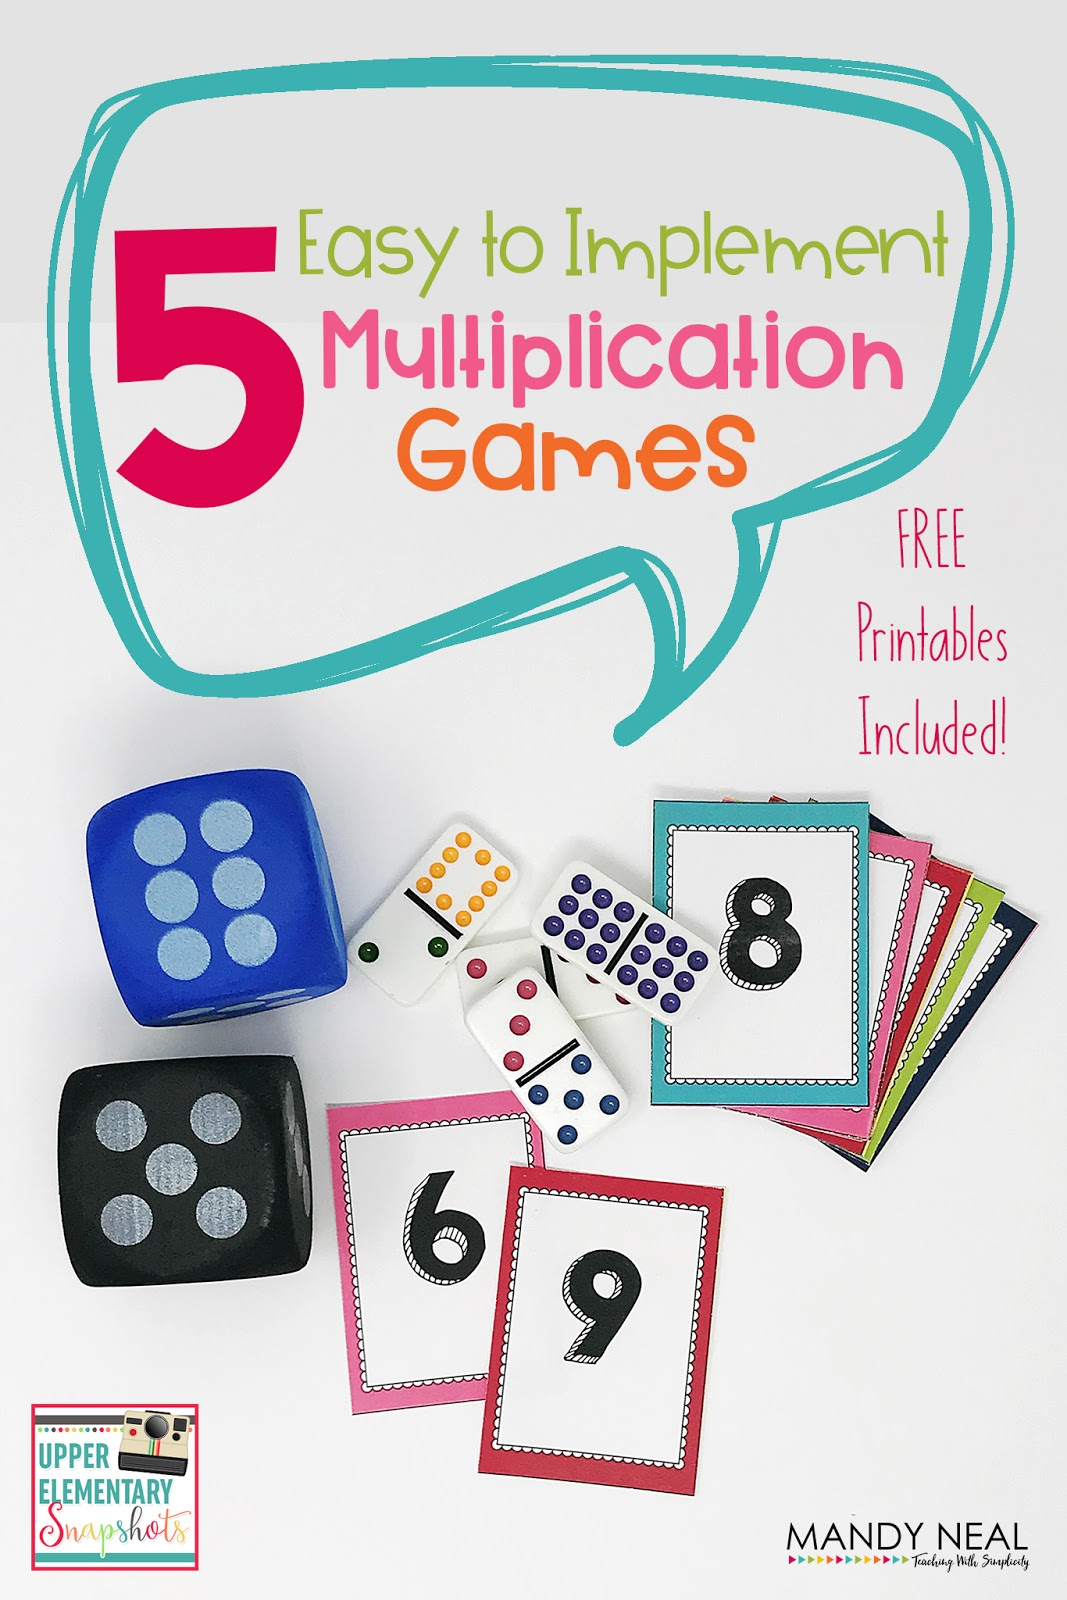 Upper Elementary Snapshots 5 Easy To Implement Multiplication Games